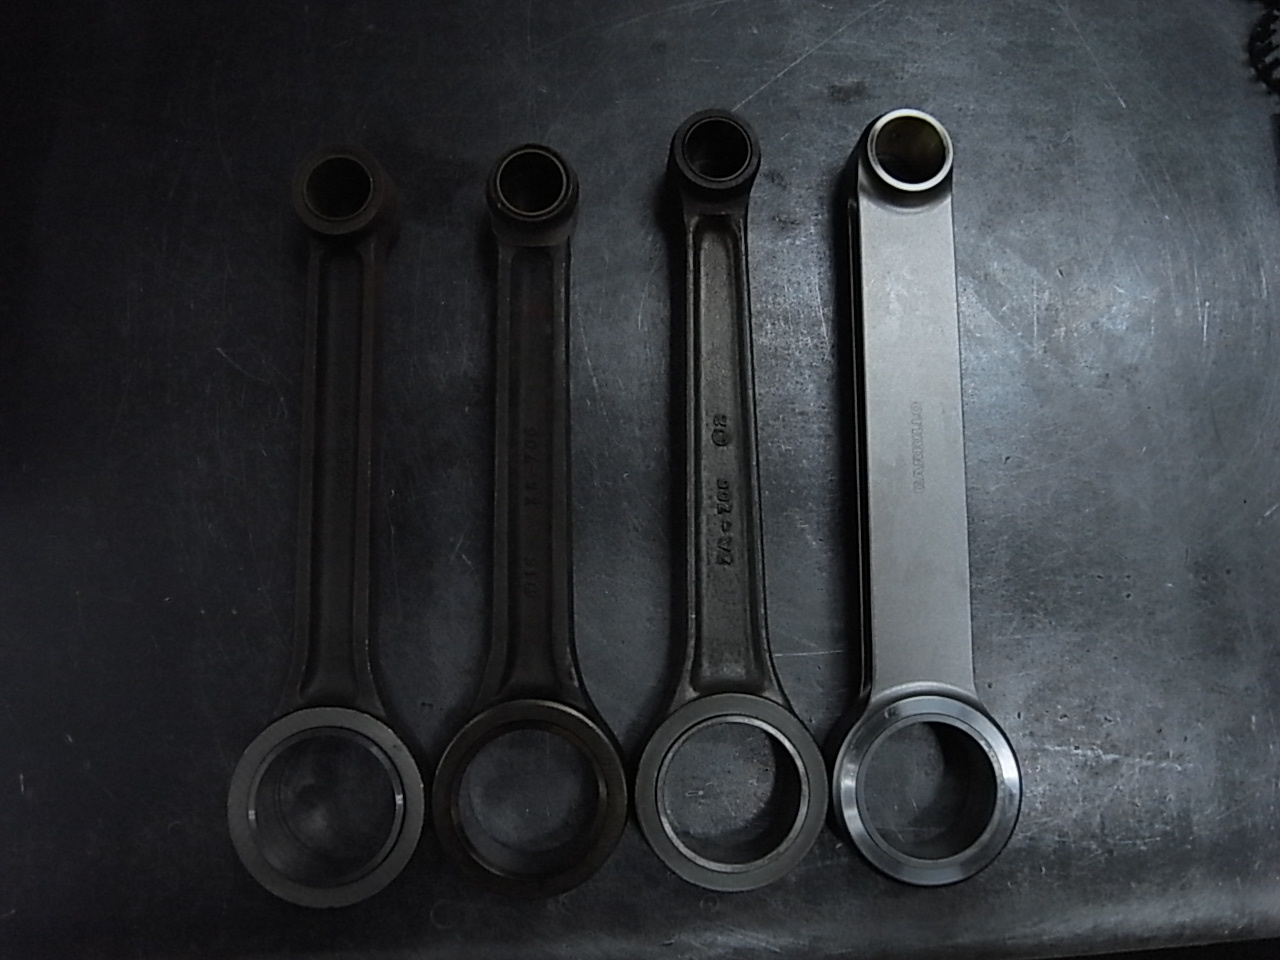 CONNECTING ROD_a0186803_22160942.jpg